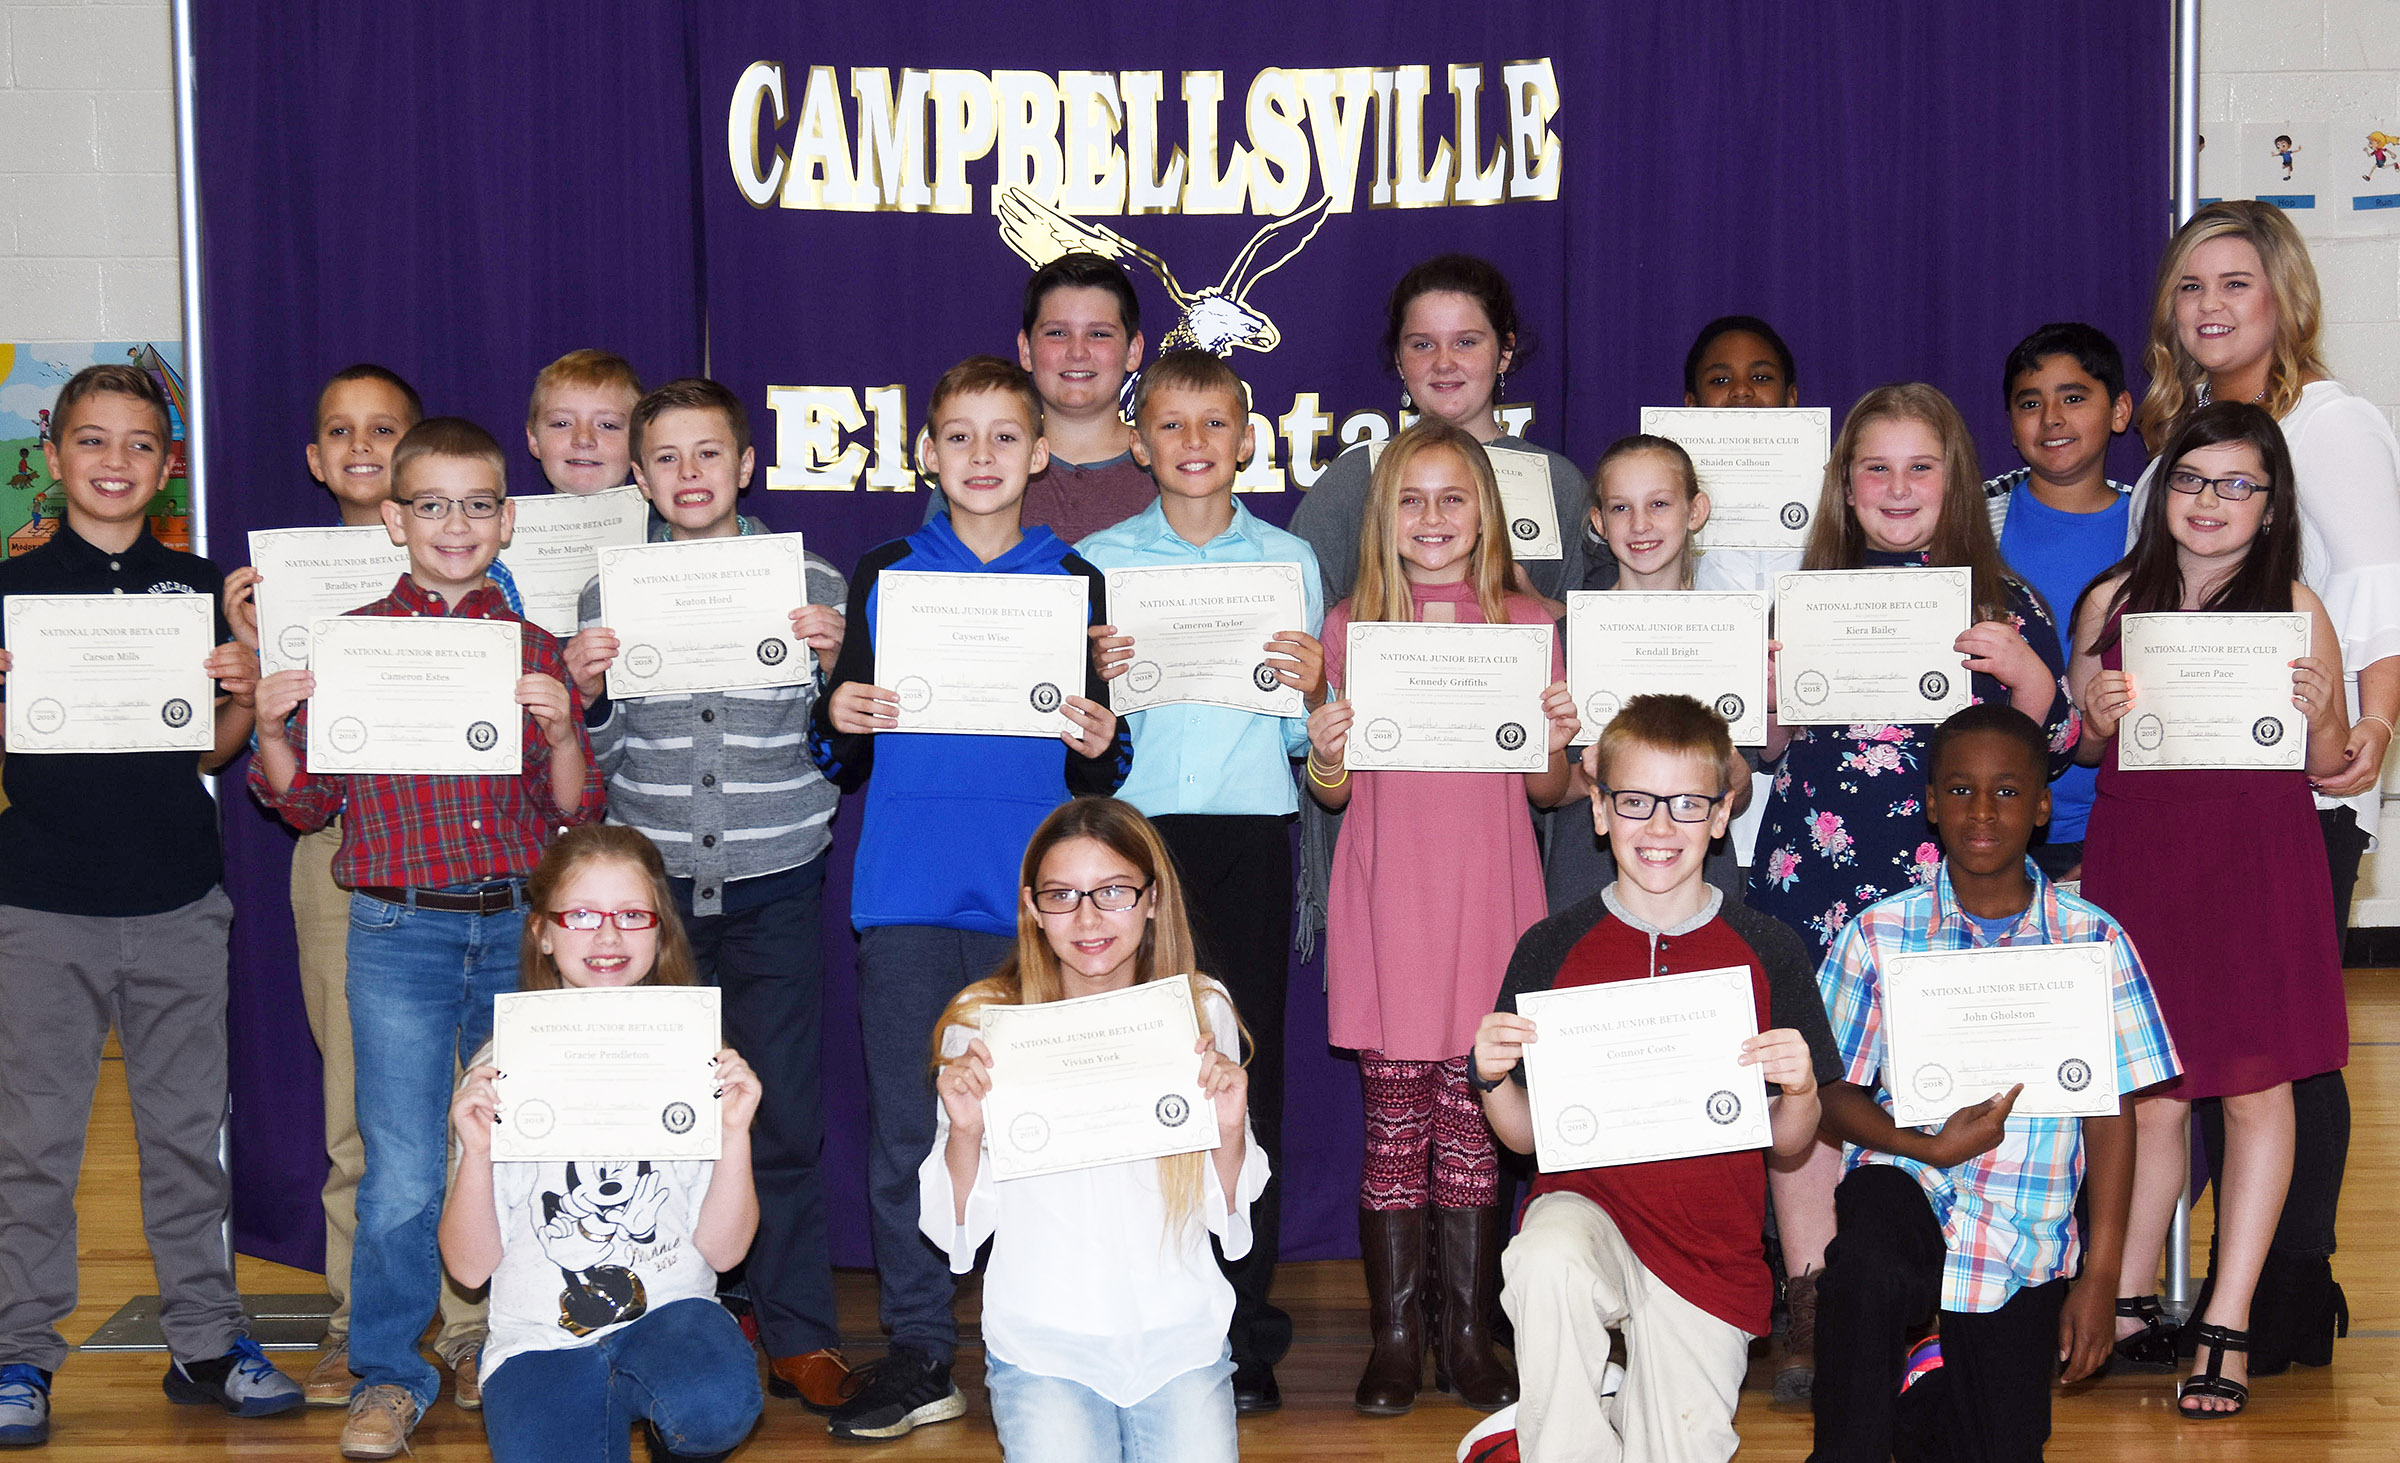 Fifth-graders inducted into the first-ever CES Junior Beta Club are, from left, front, Gracie Pendleton, Vivian York, Connor Coots and John Gholston. Second row, Cameron Estes, Keaton Hord, Caysen Wise, Cameron Taylor, Kennedy Griffiths, Kendall Bright, Keira Bailey and Lauren Pace. Back, Carson Mills, Bradley Paris, Ryder Murphy, Ethan Garrison, Madison Philpott, Shaiden Calhoun, Cody Tamez and sponsor Alison LaRue. Absent from the photo is Grayson Dooley.